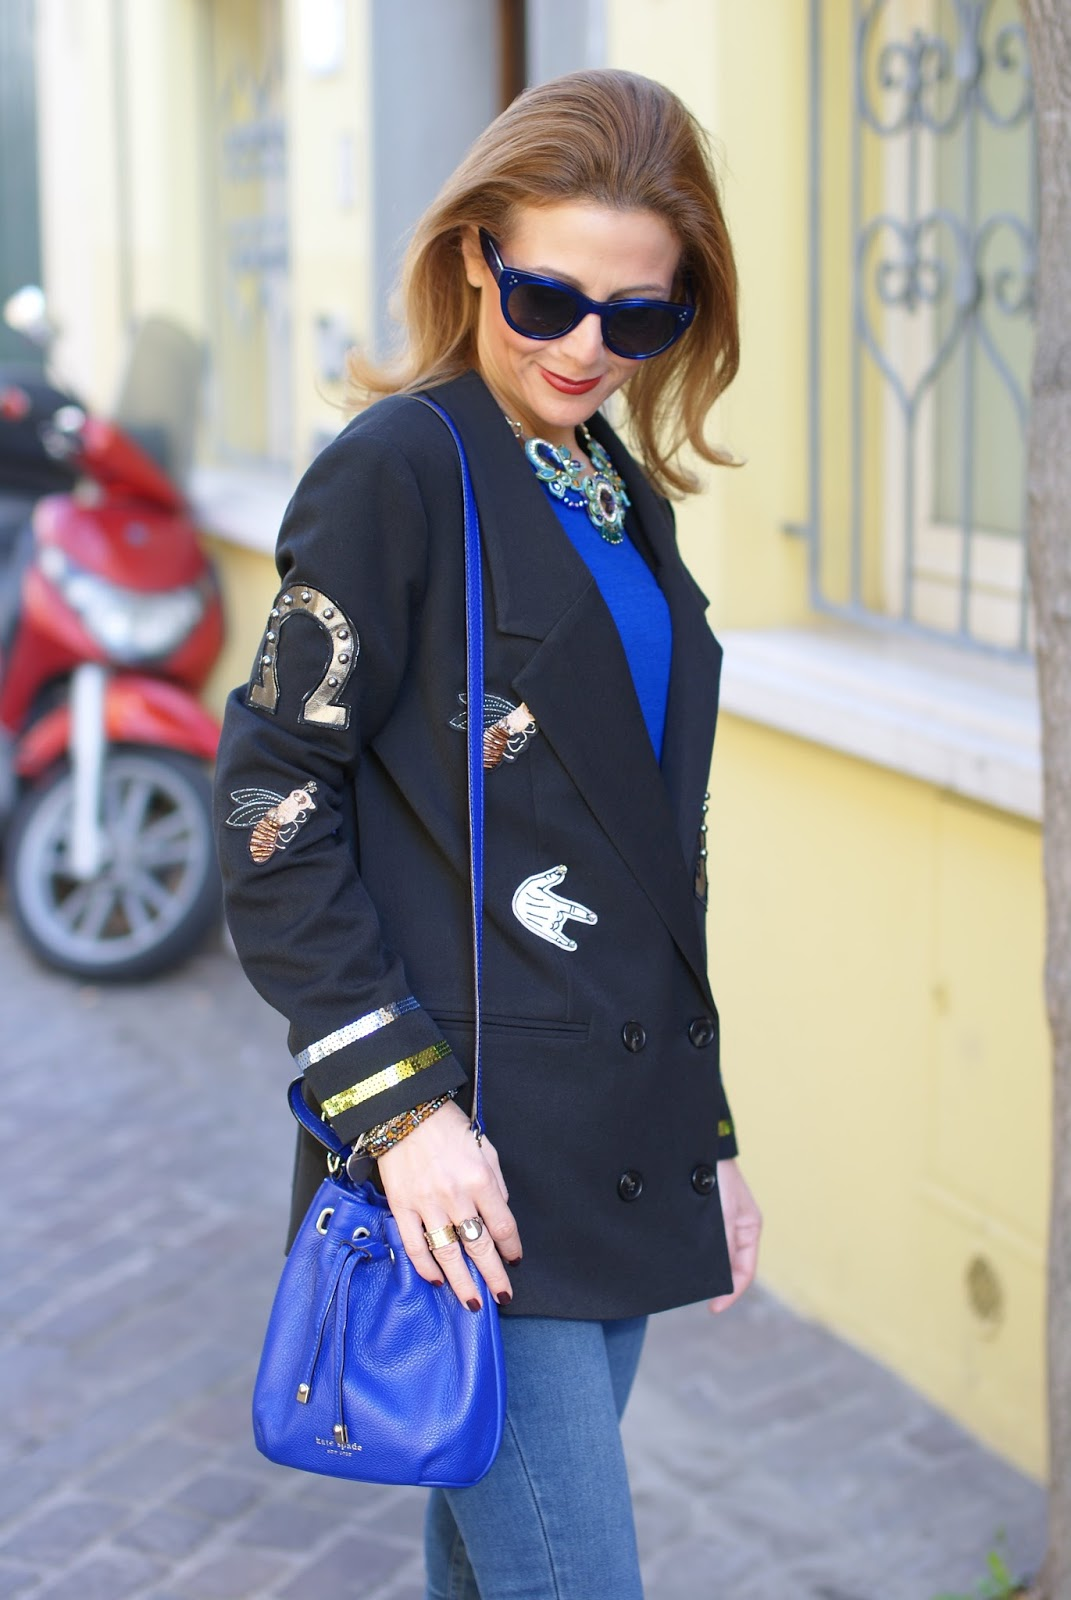 Vogos appliqued blazer with lucky charms and Hype Glass on Fashion and Cookies fashion blog, fashion blogger style